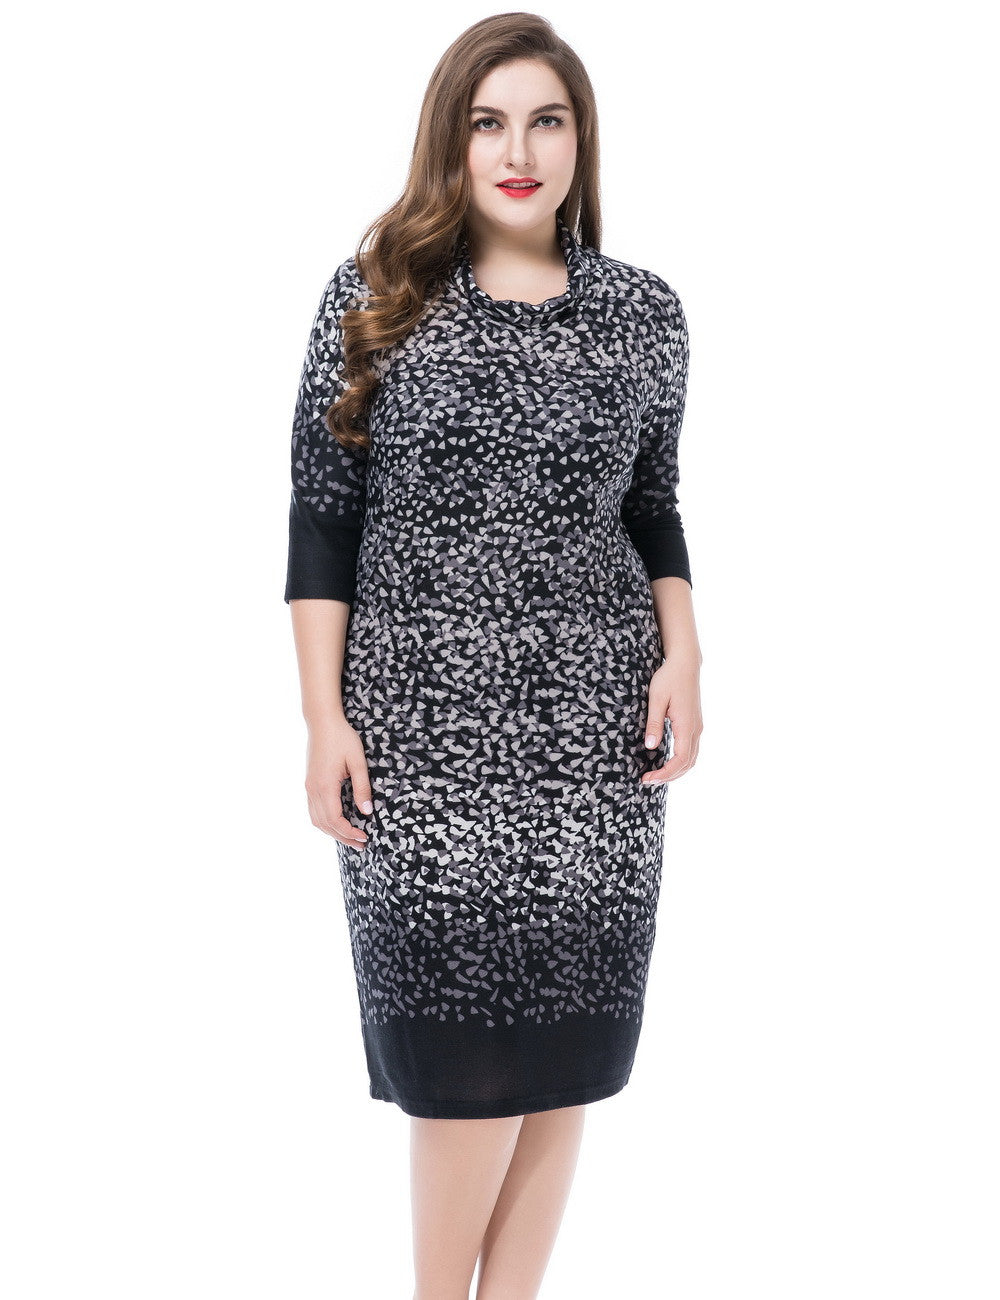 Chicwe Women's Cashmere Touch Plus Size Printed Dress Cowl Neck US16-26